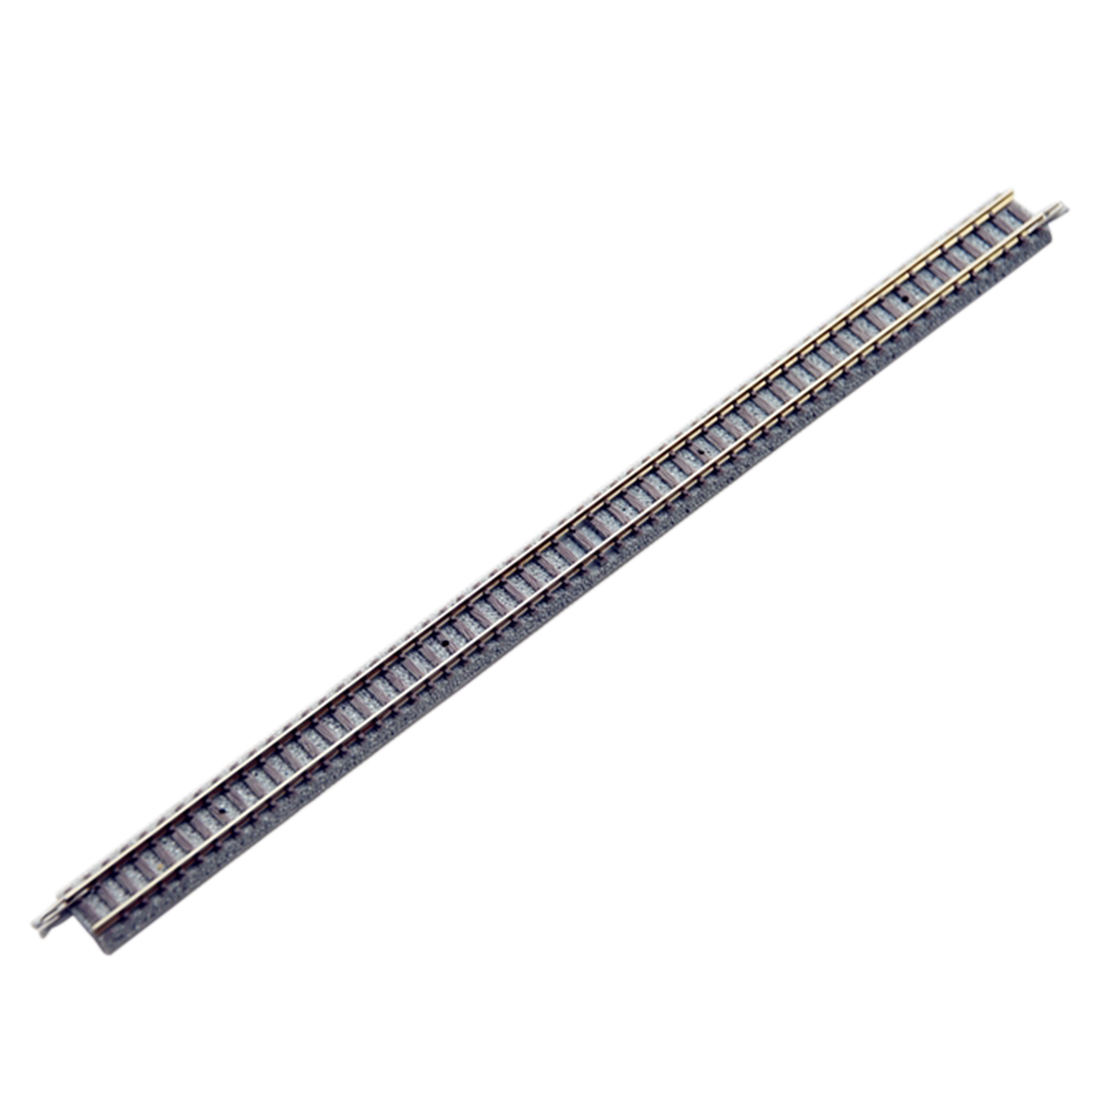 28cm 1:160 Scale S280 / S280-SL Straight Track With 9mm Gauge For N-scale Train Model Building Kit